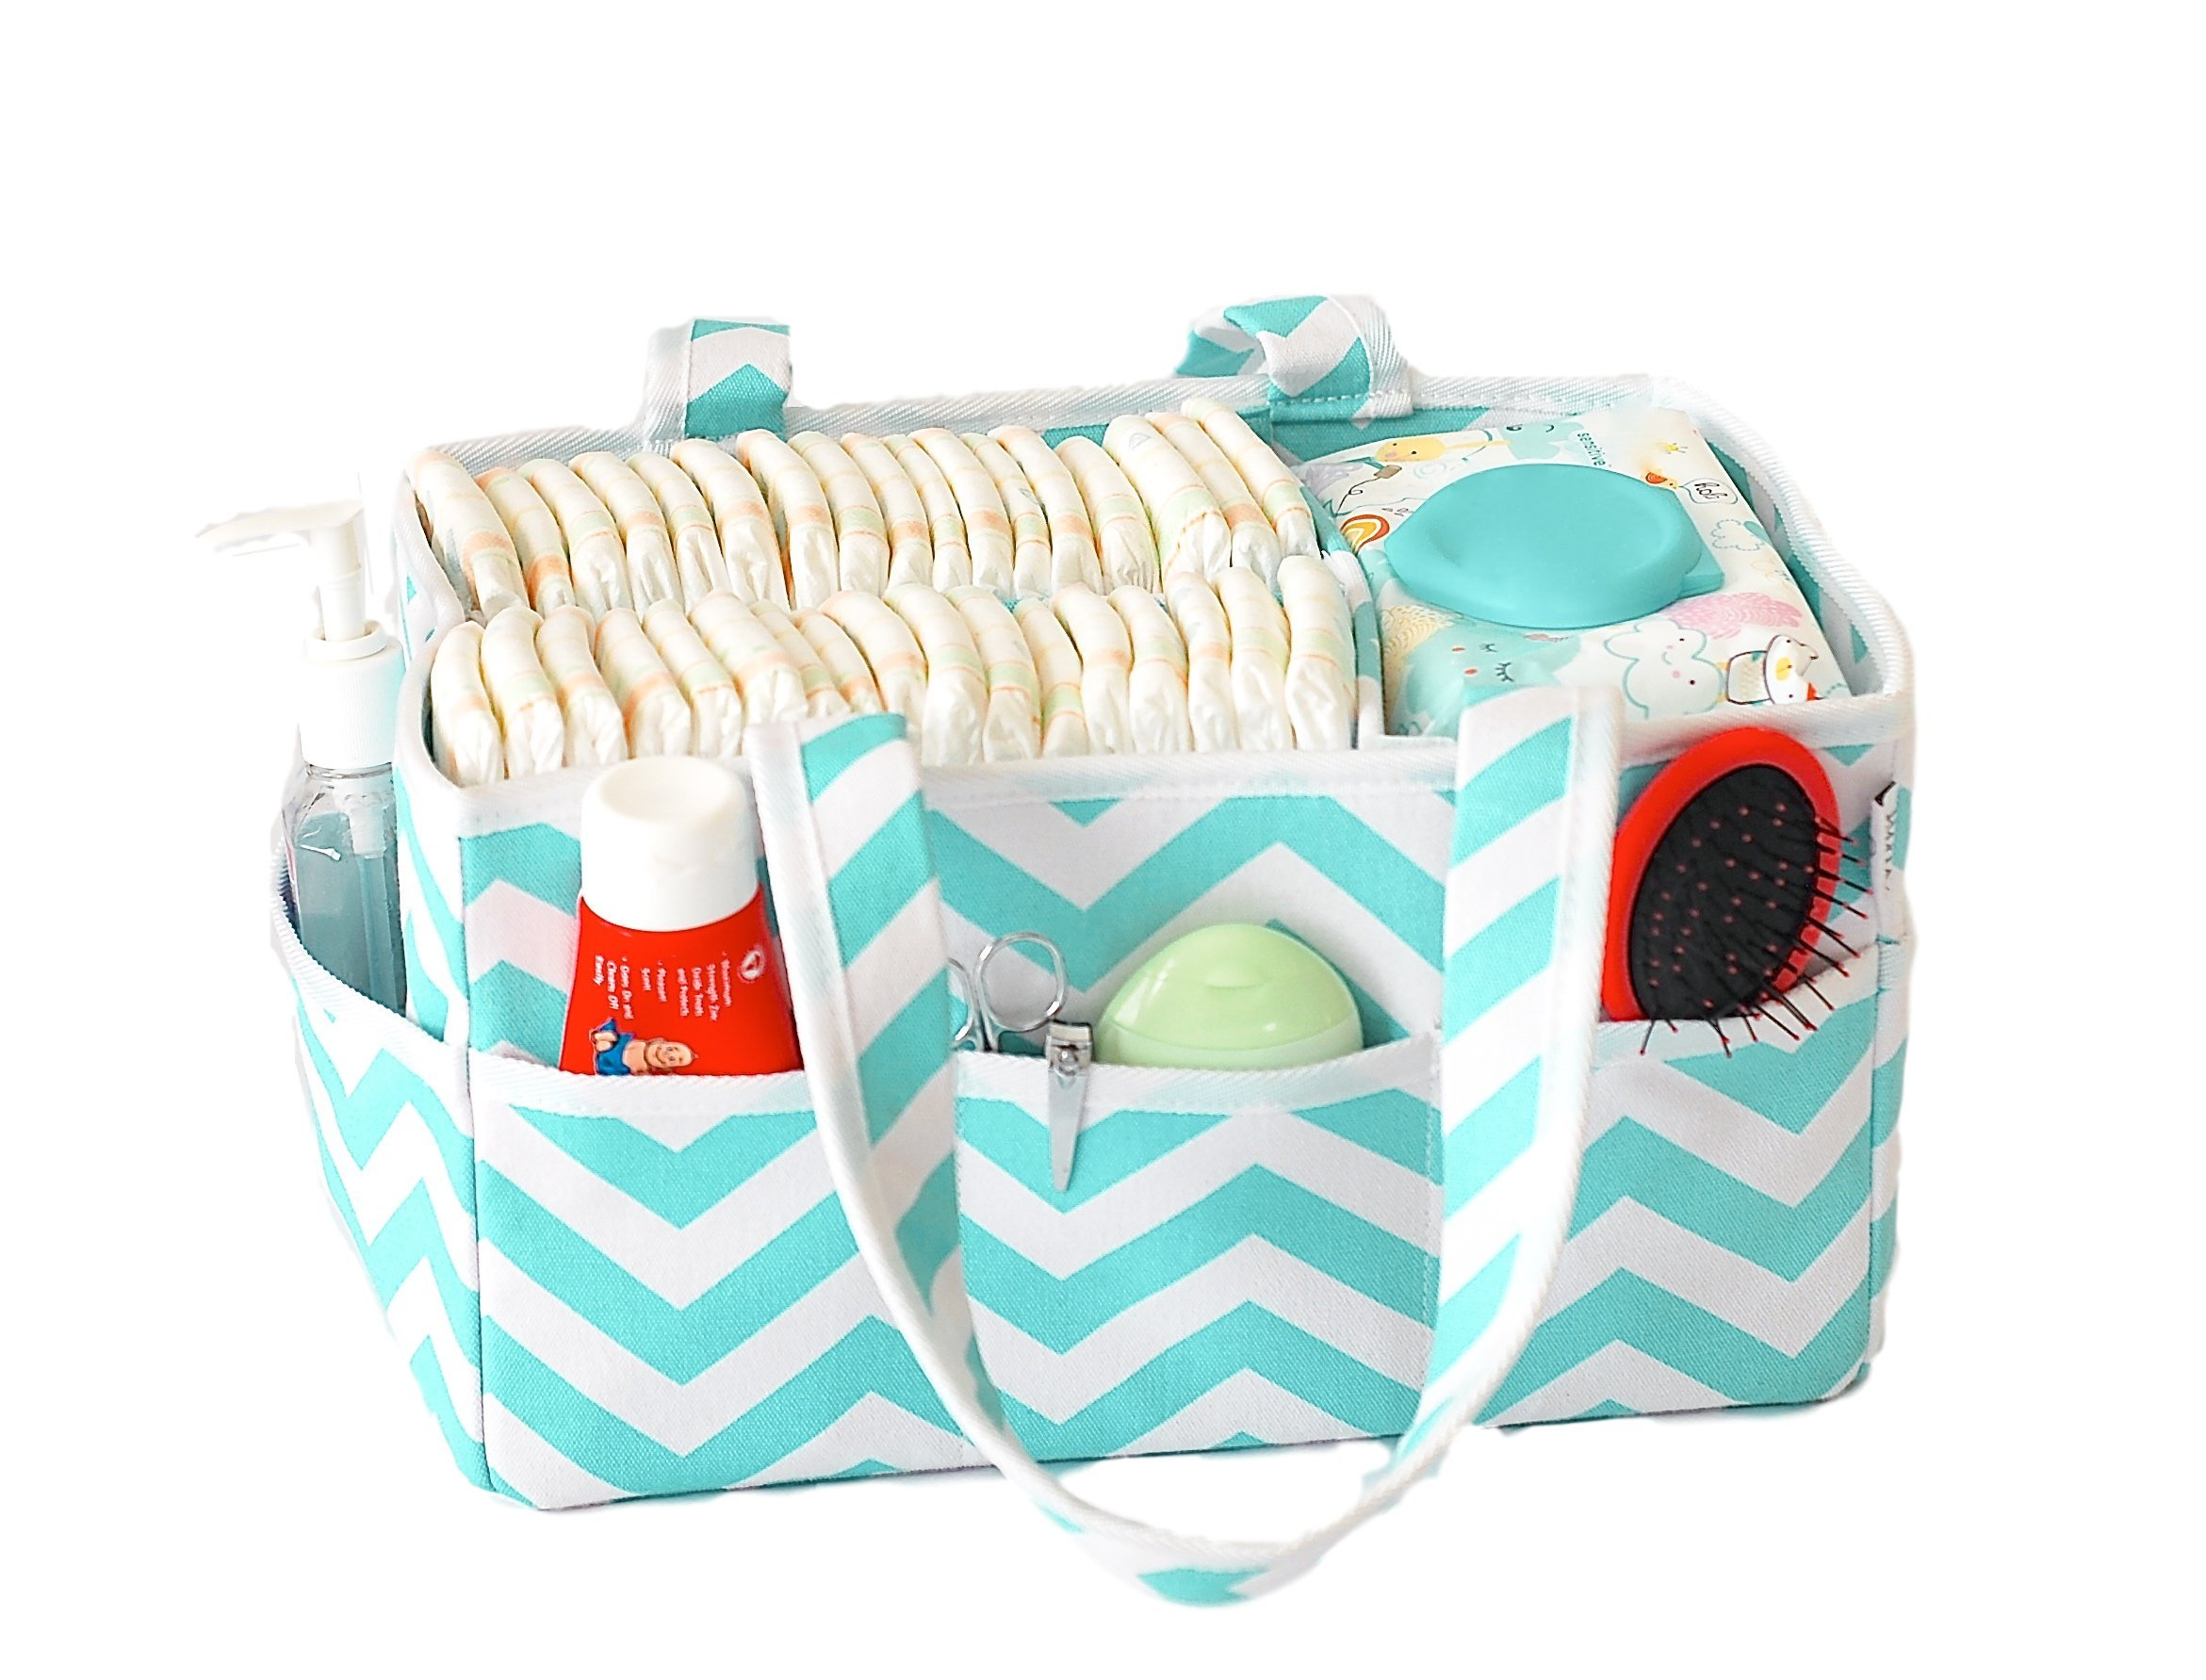 June Bug Baby Diaper Caddy - Storage Bin for Diapers and Baby Wipes - Home, Car, and Nursery Organizer - Unisex Turquoise Chevron Design